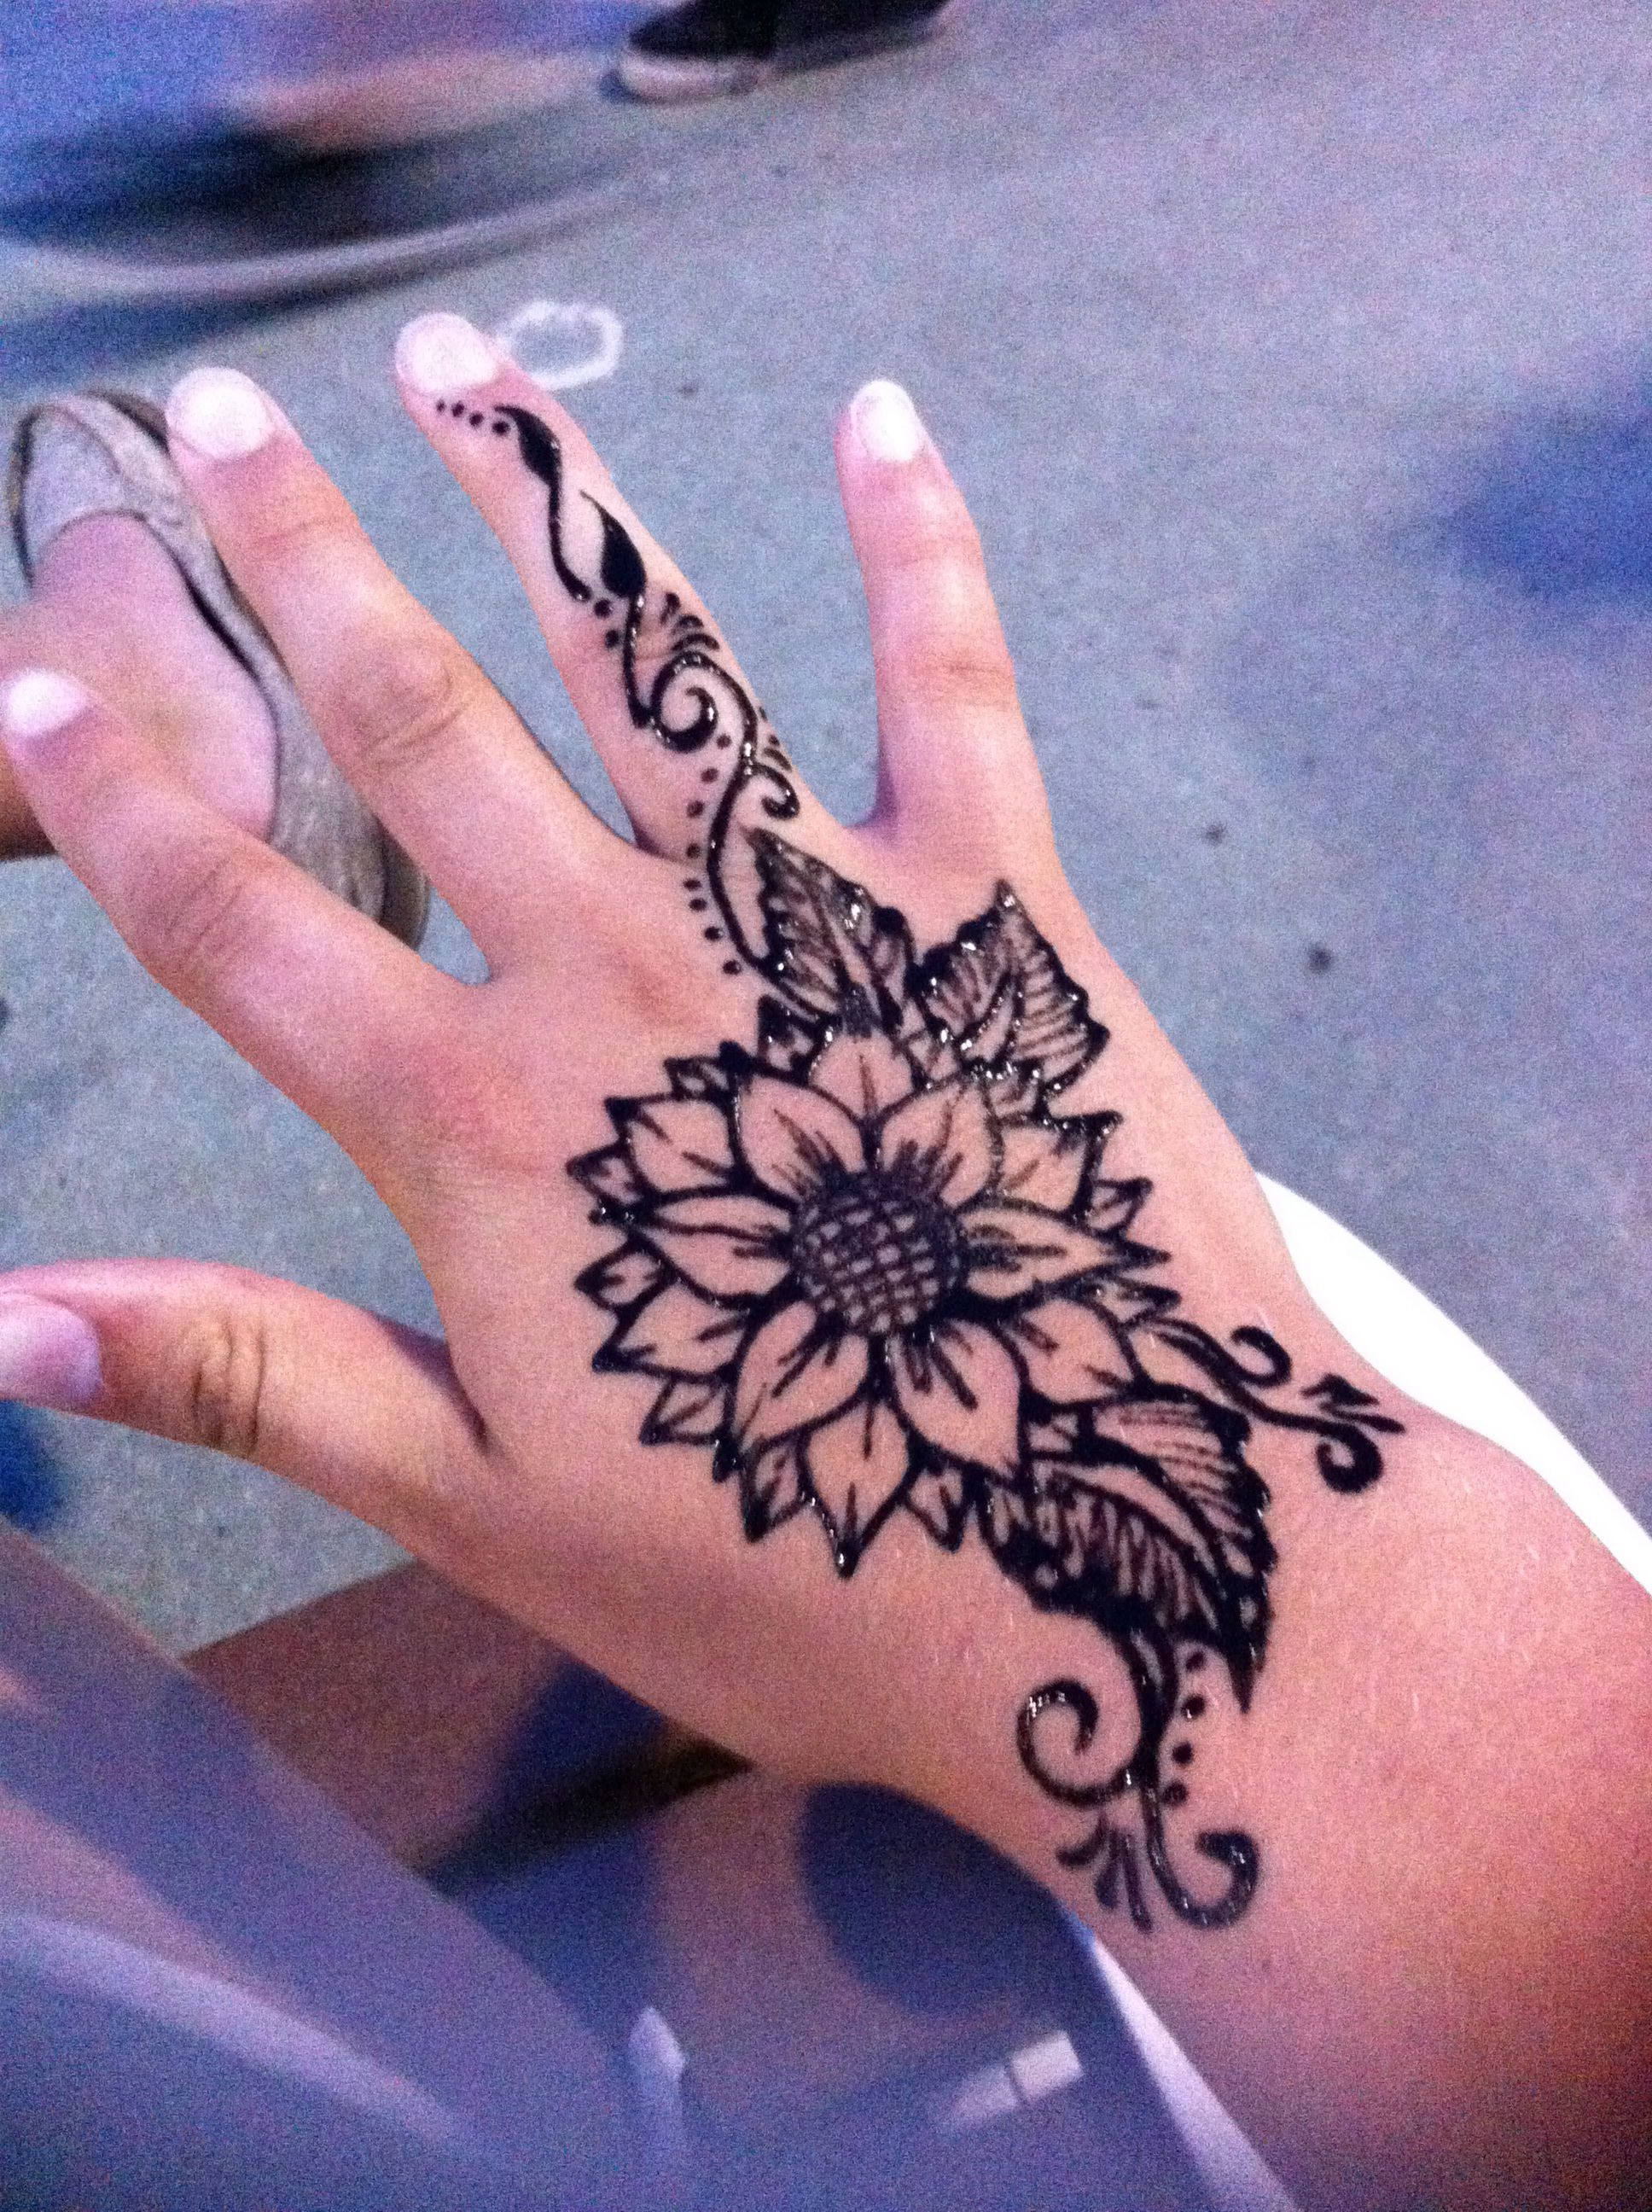 Henna Mehndi Tattoo Designs Idea For Wrist: Henna Tattoo Designs, Henna